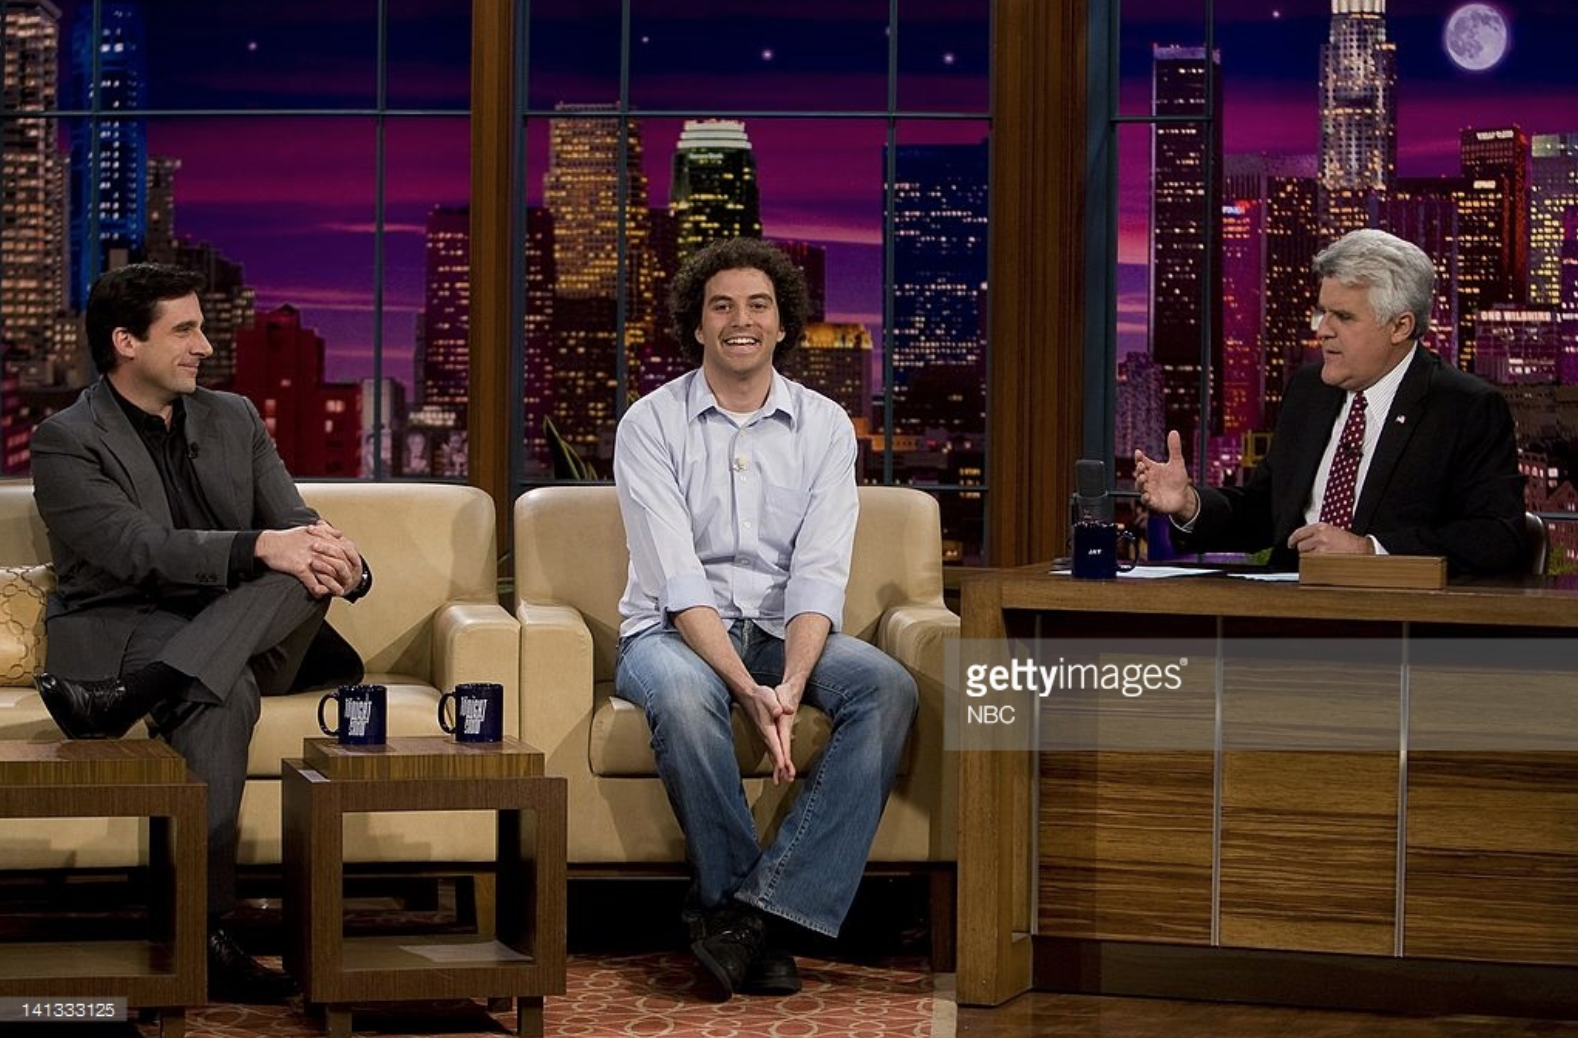 That time Joel was a guest on The Tonight Show with Jay Leno